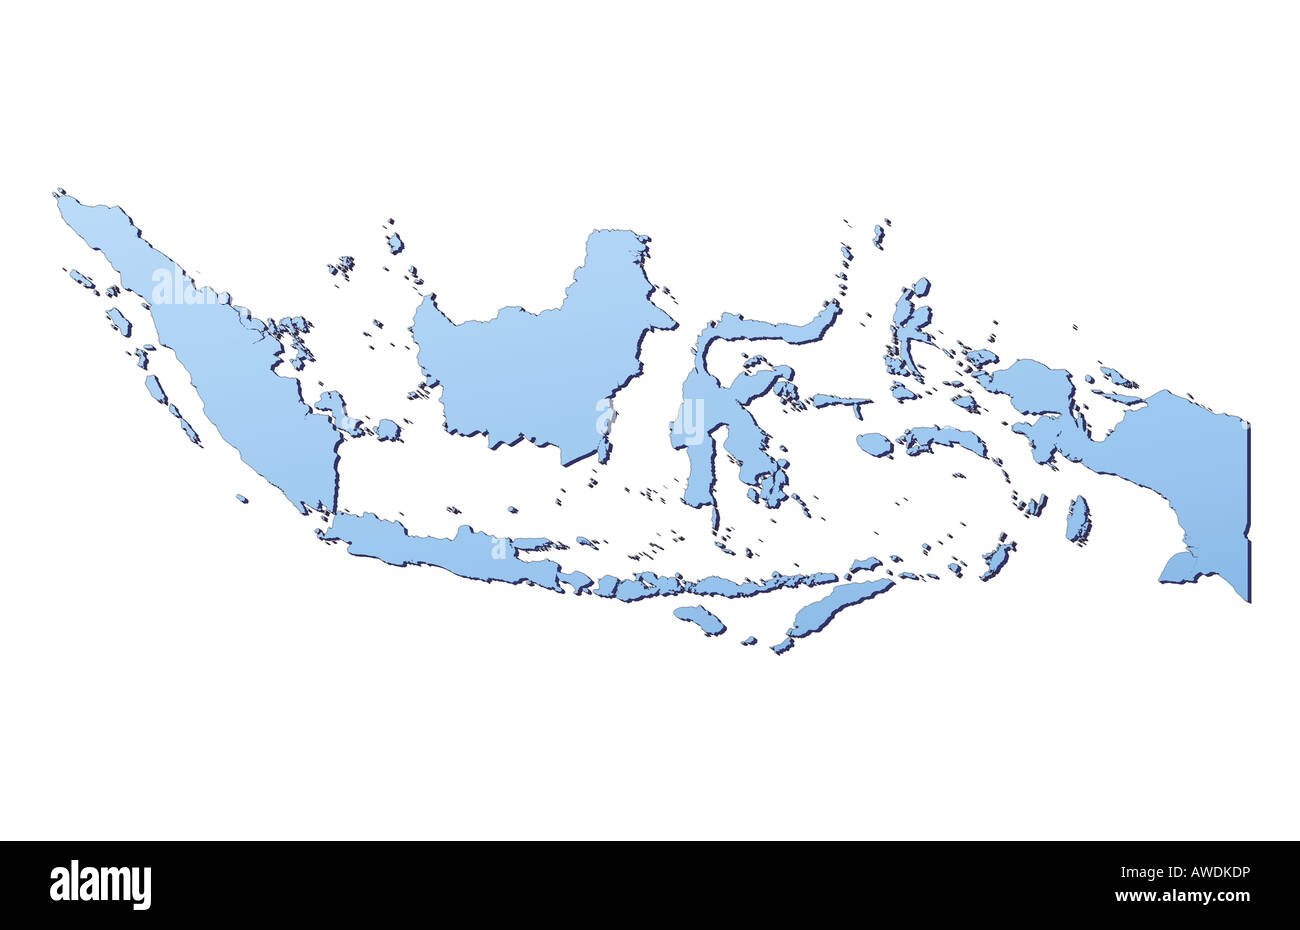 indonesia map high resolution stock photography and images alamy https www alamy com stock photo indonesia map 16548945 html